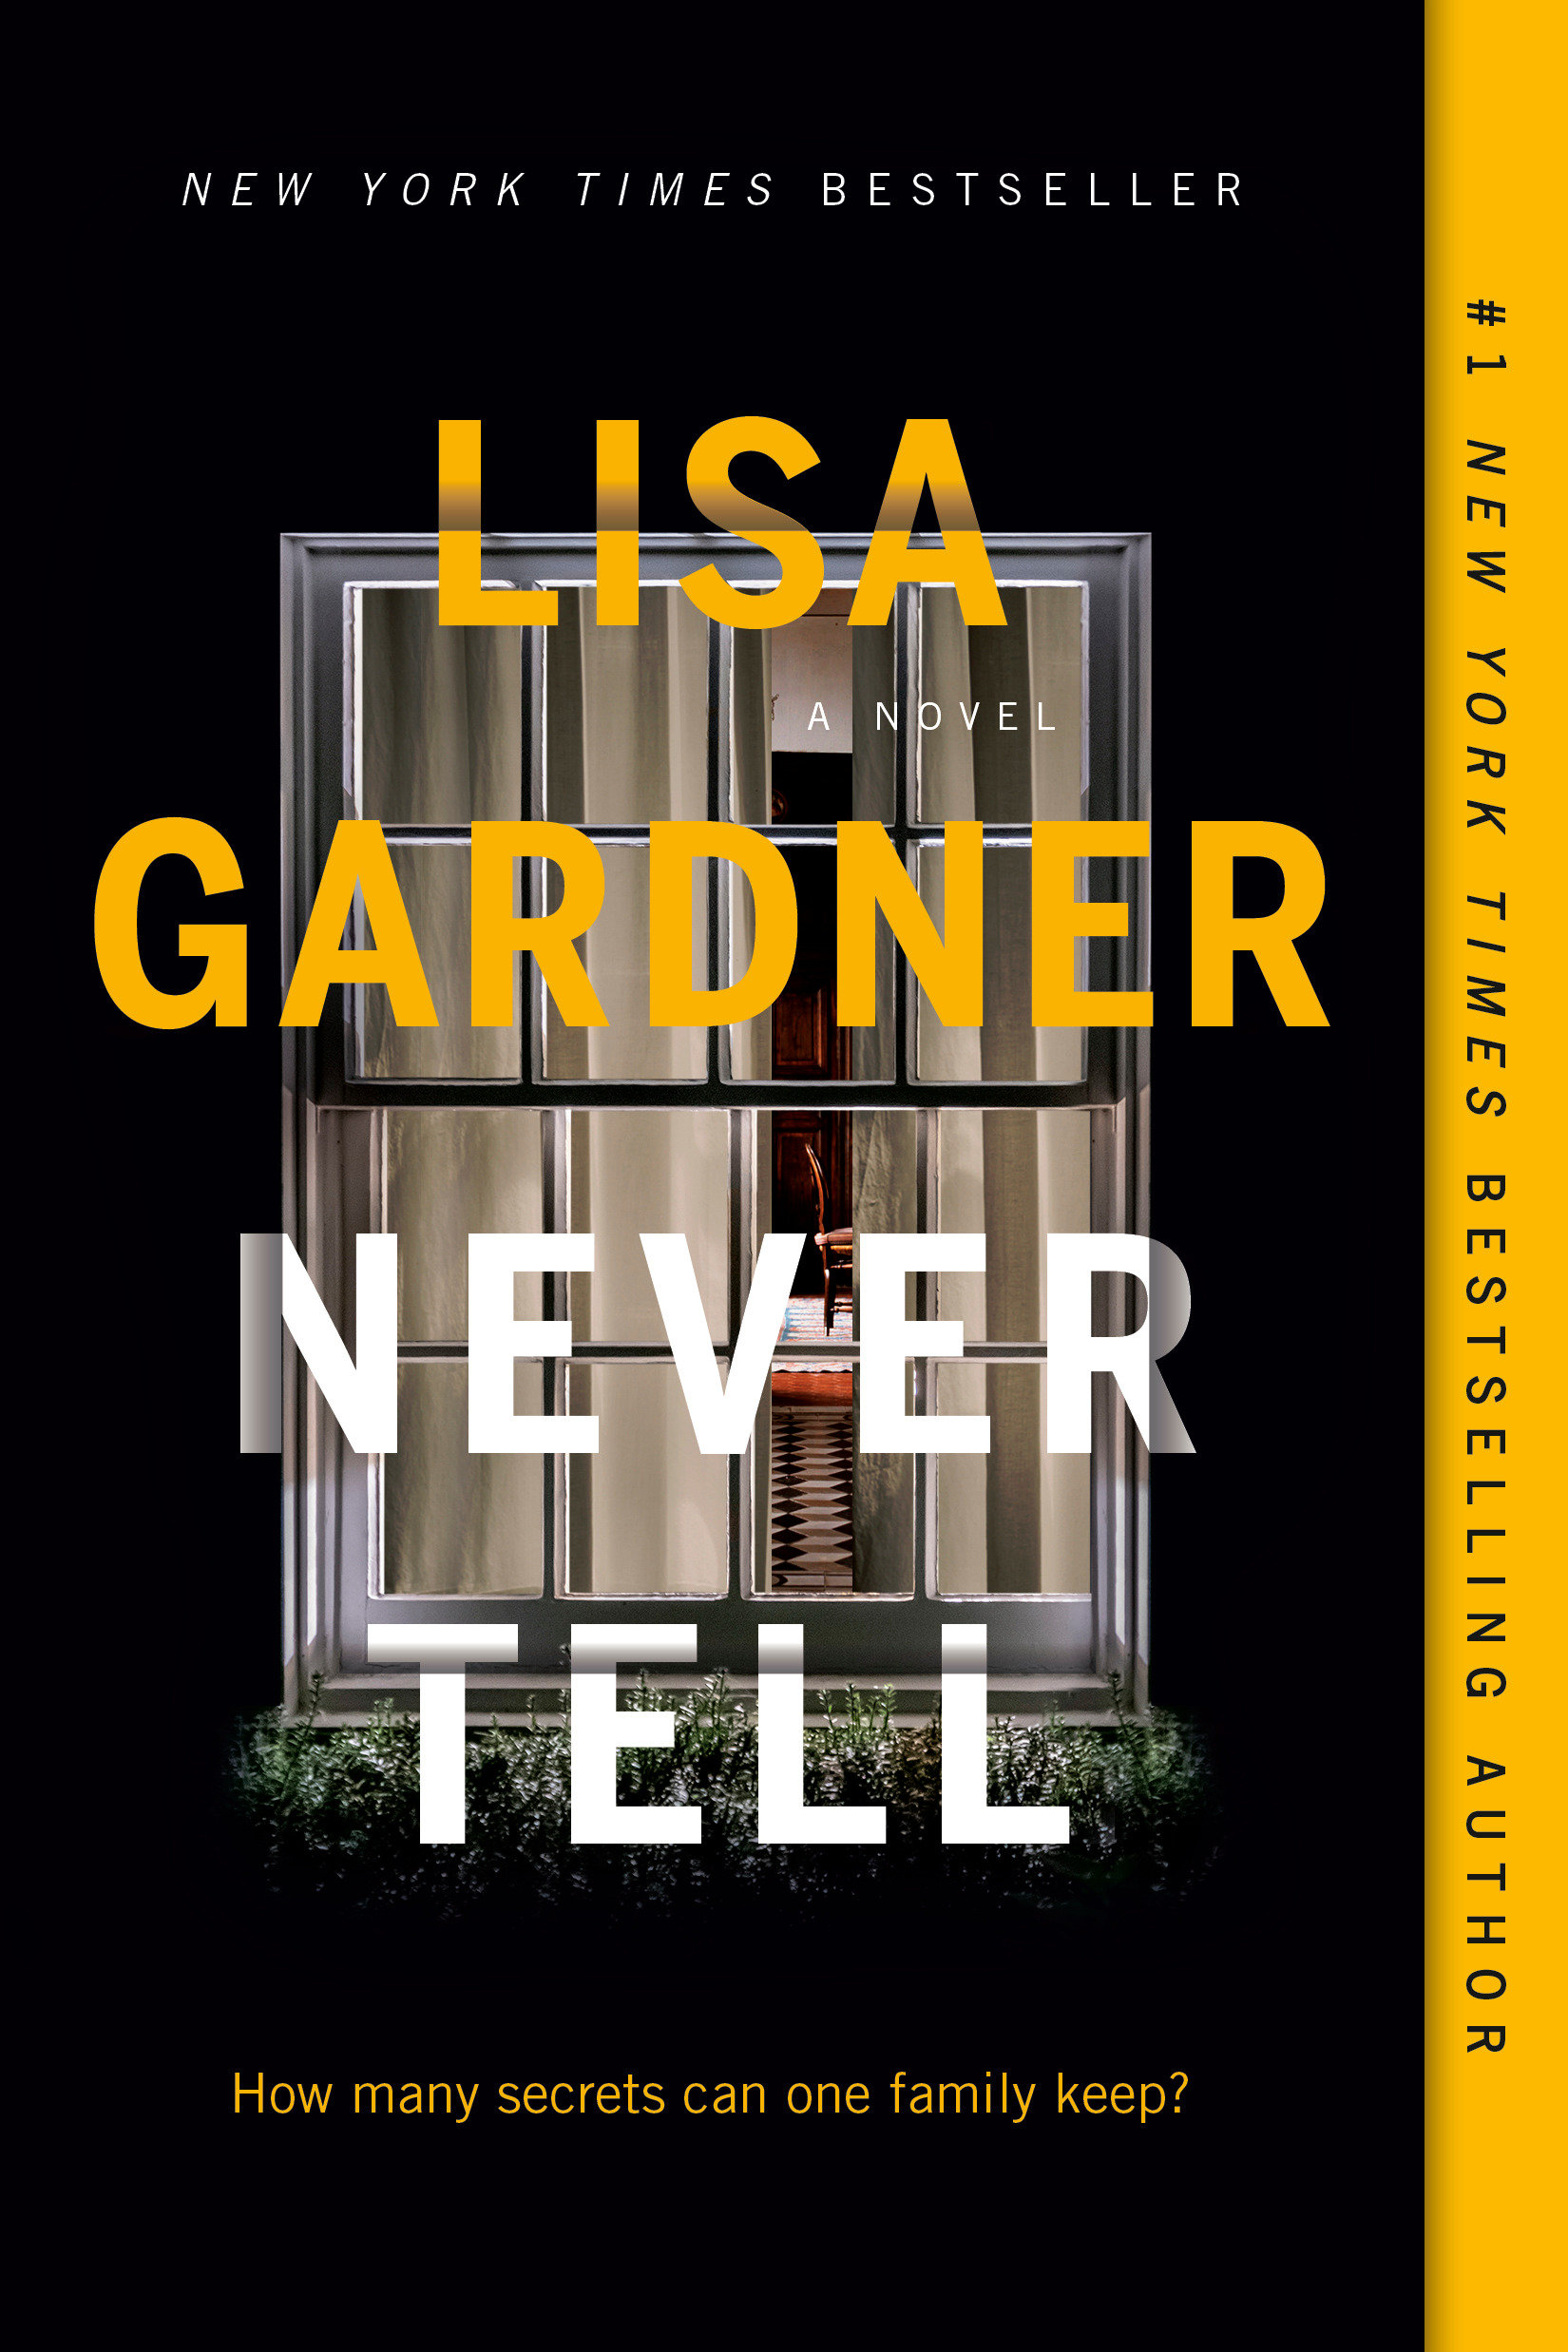 Never tell : a novel